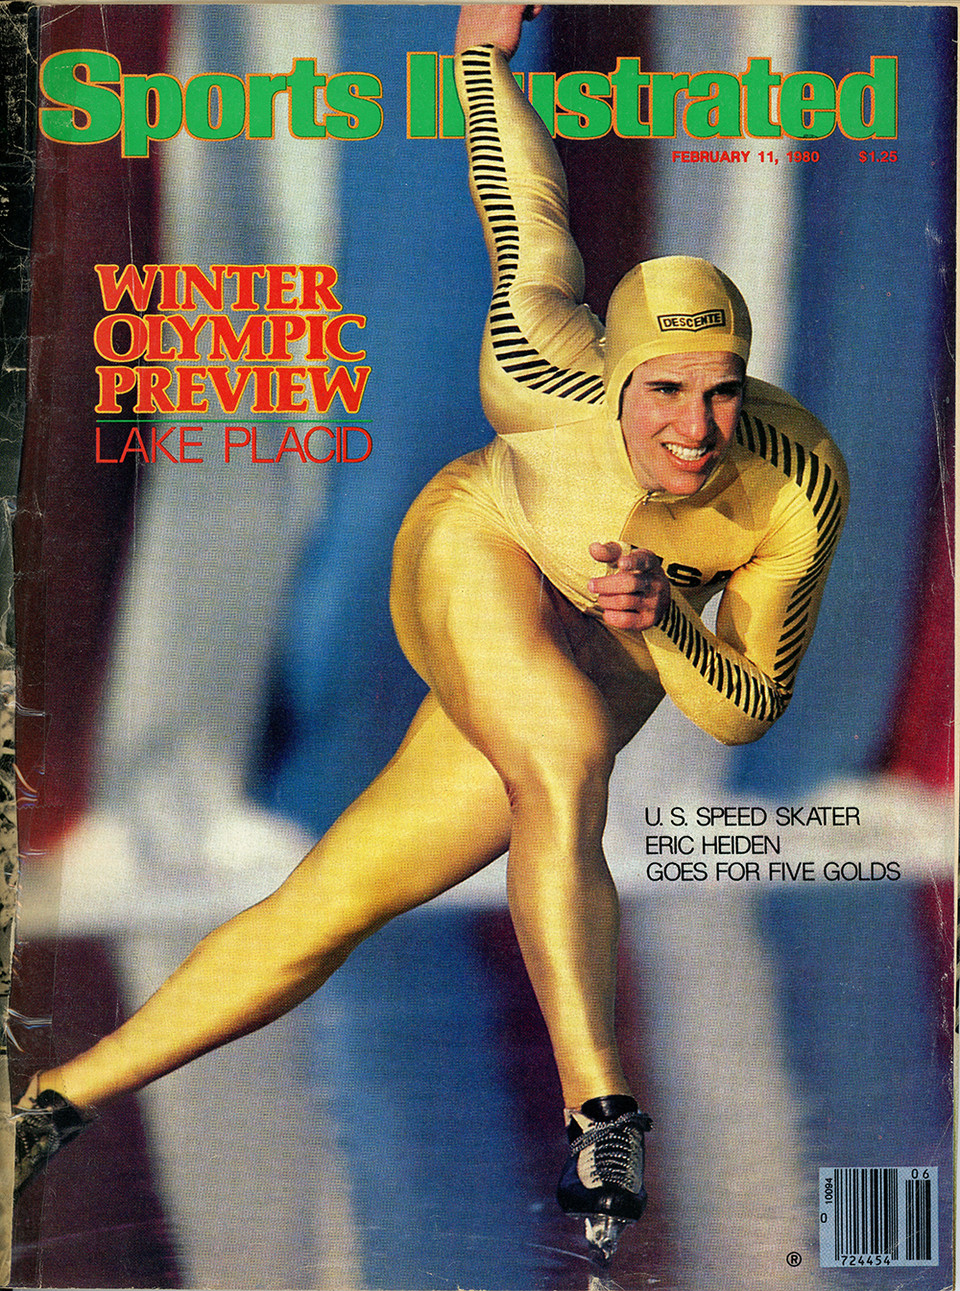 Heiden on the cover of Sports Illustrated prior to the 1980 Games